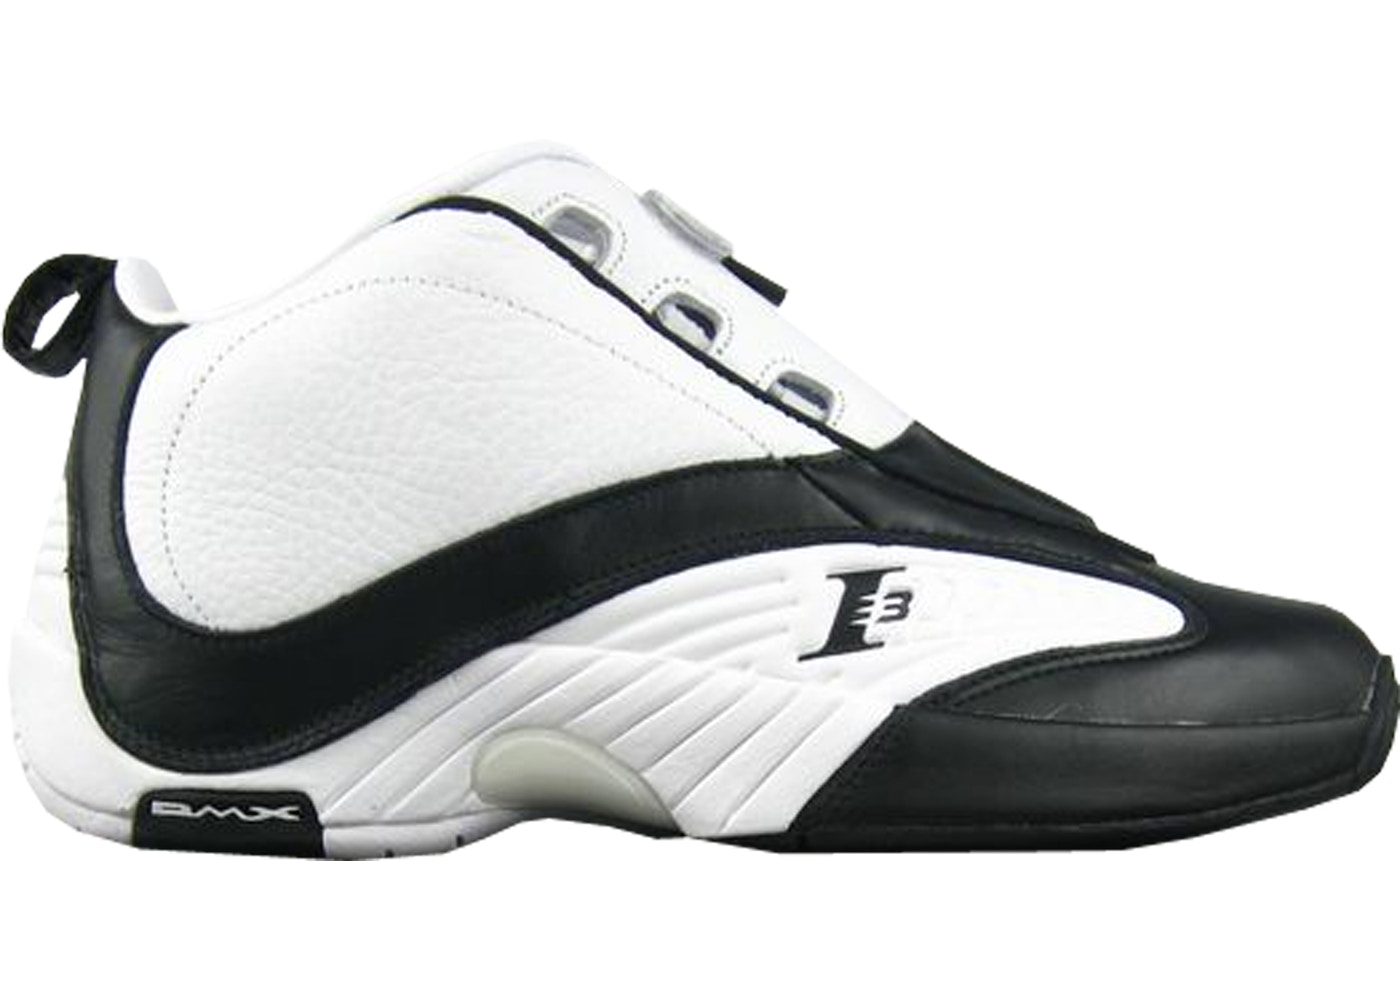 separation shoes best sell skate shoes Reebok Answer IV White Black (2012)